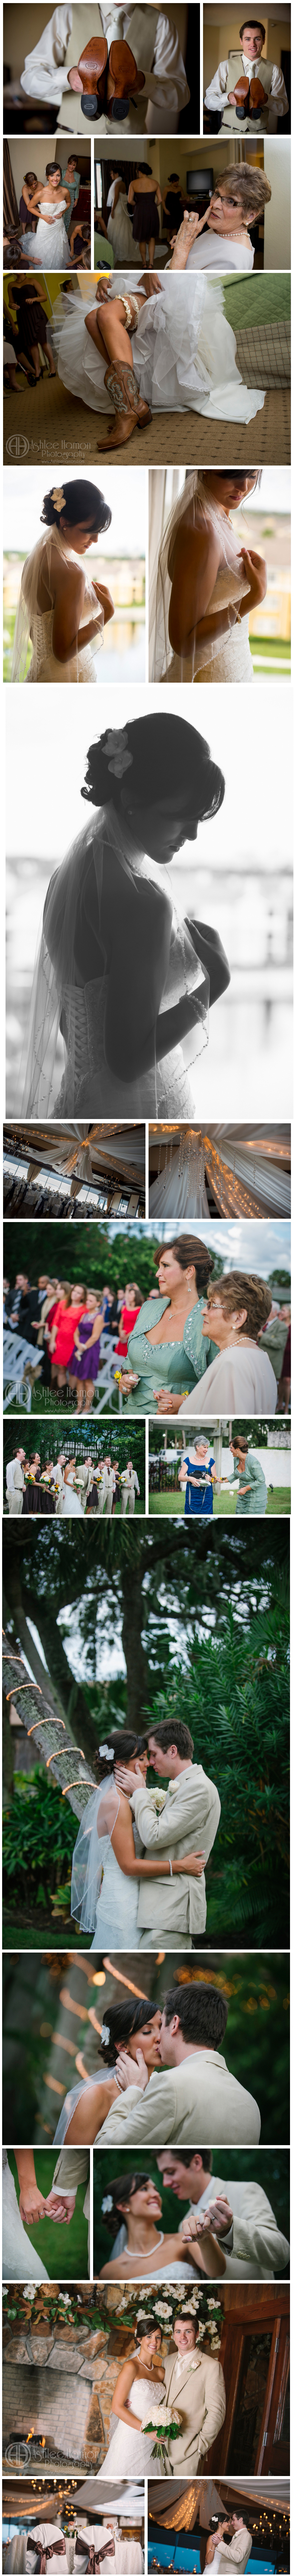 Rusty Pelican Wedding Photography